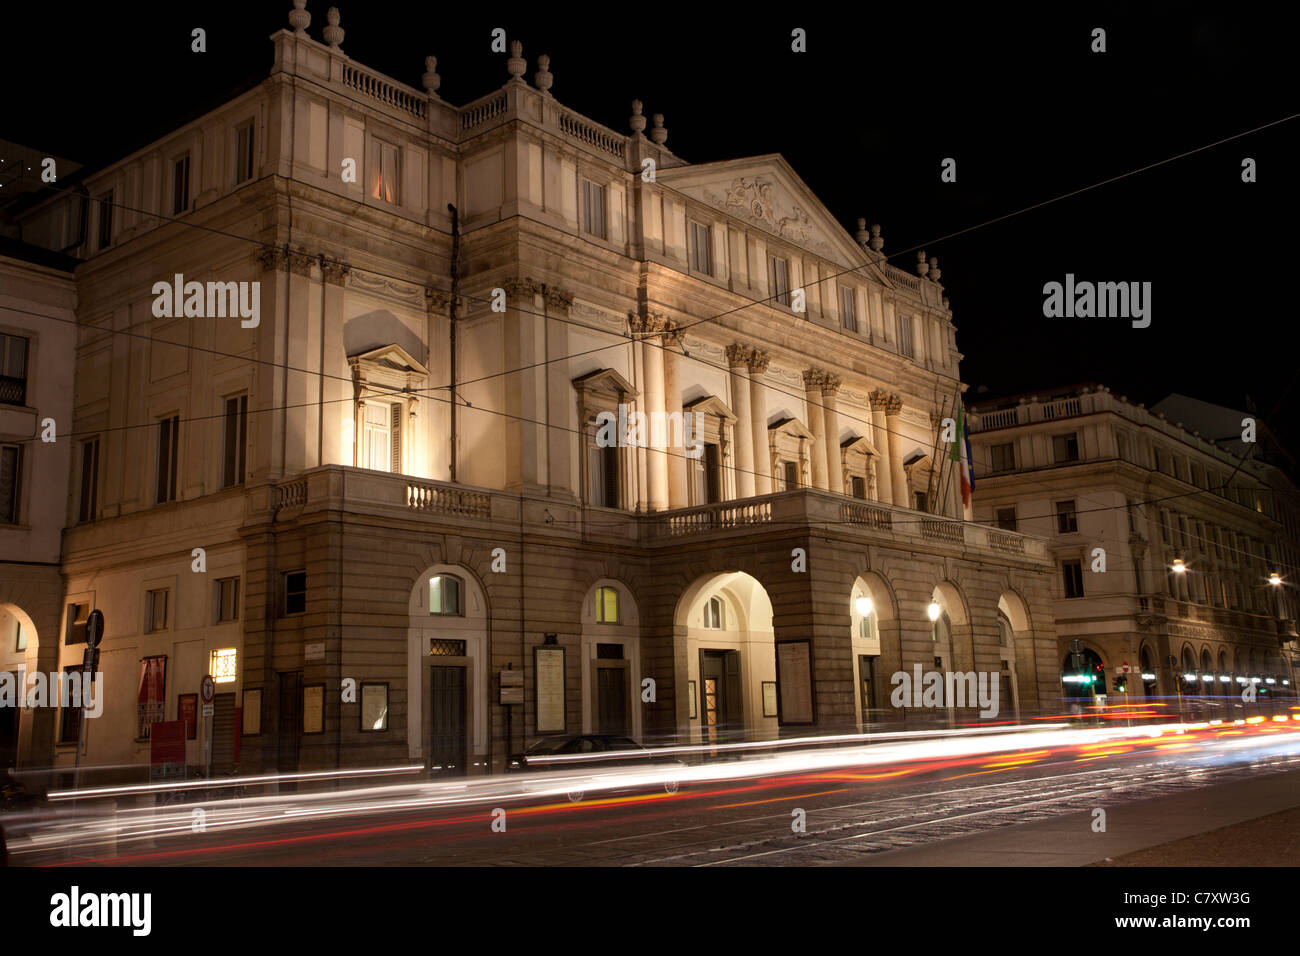 Milan - La Scala theater - Stock Image